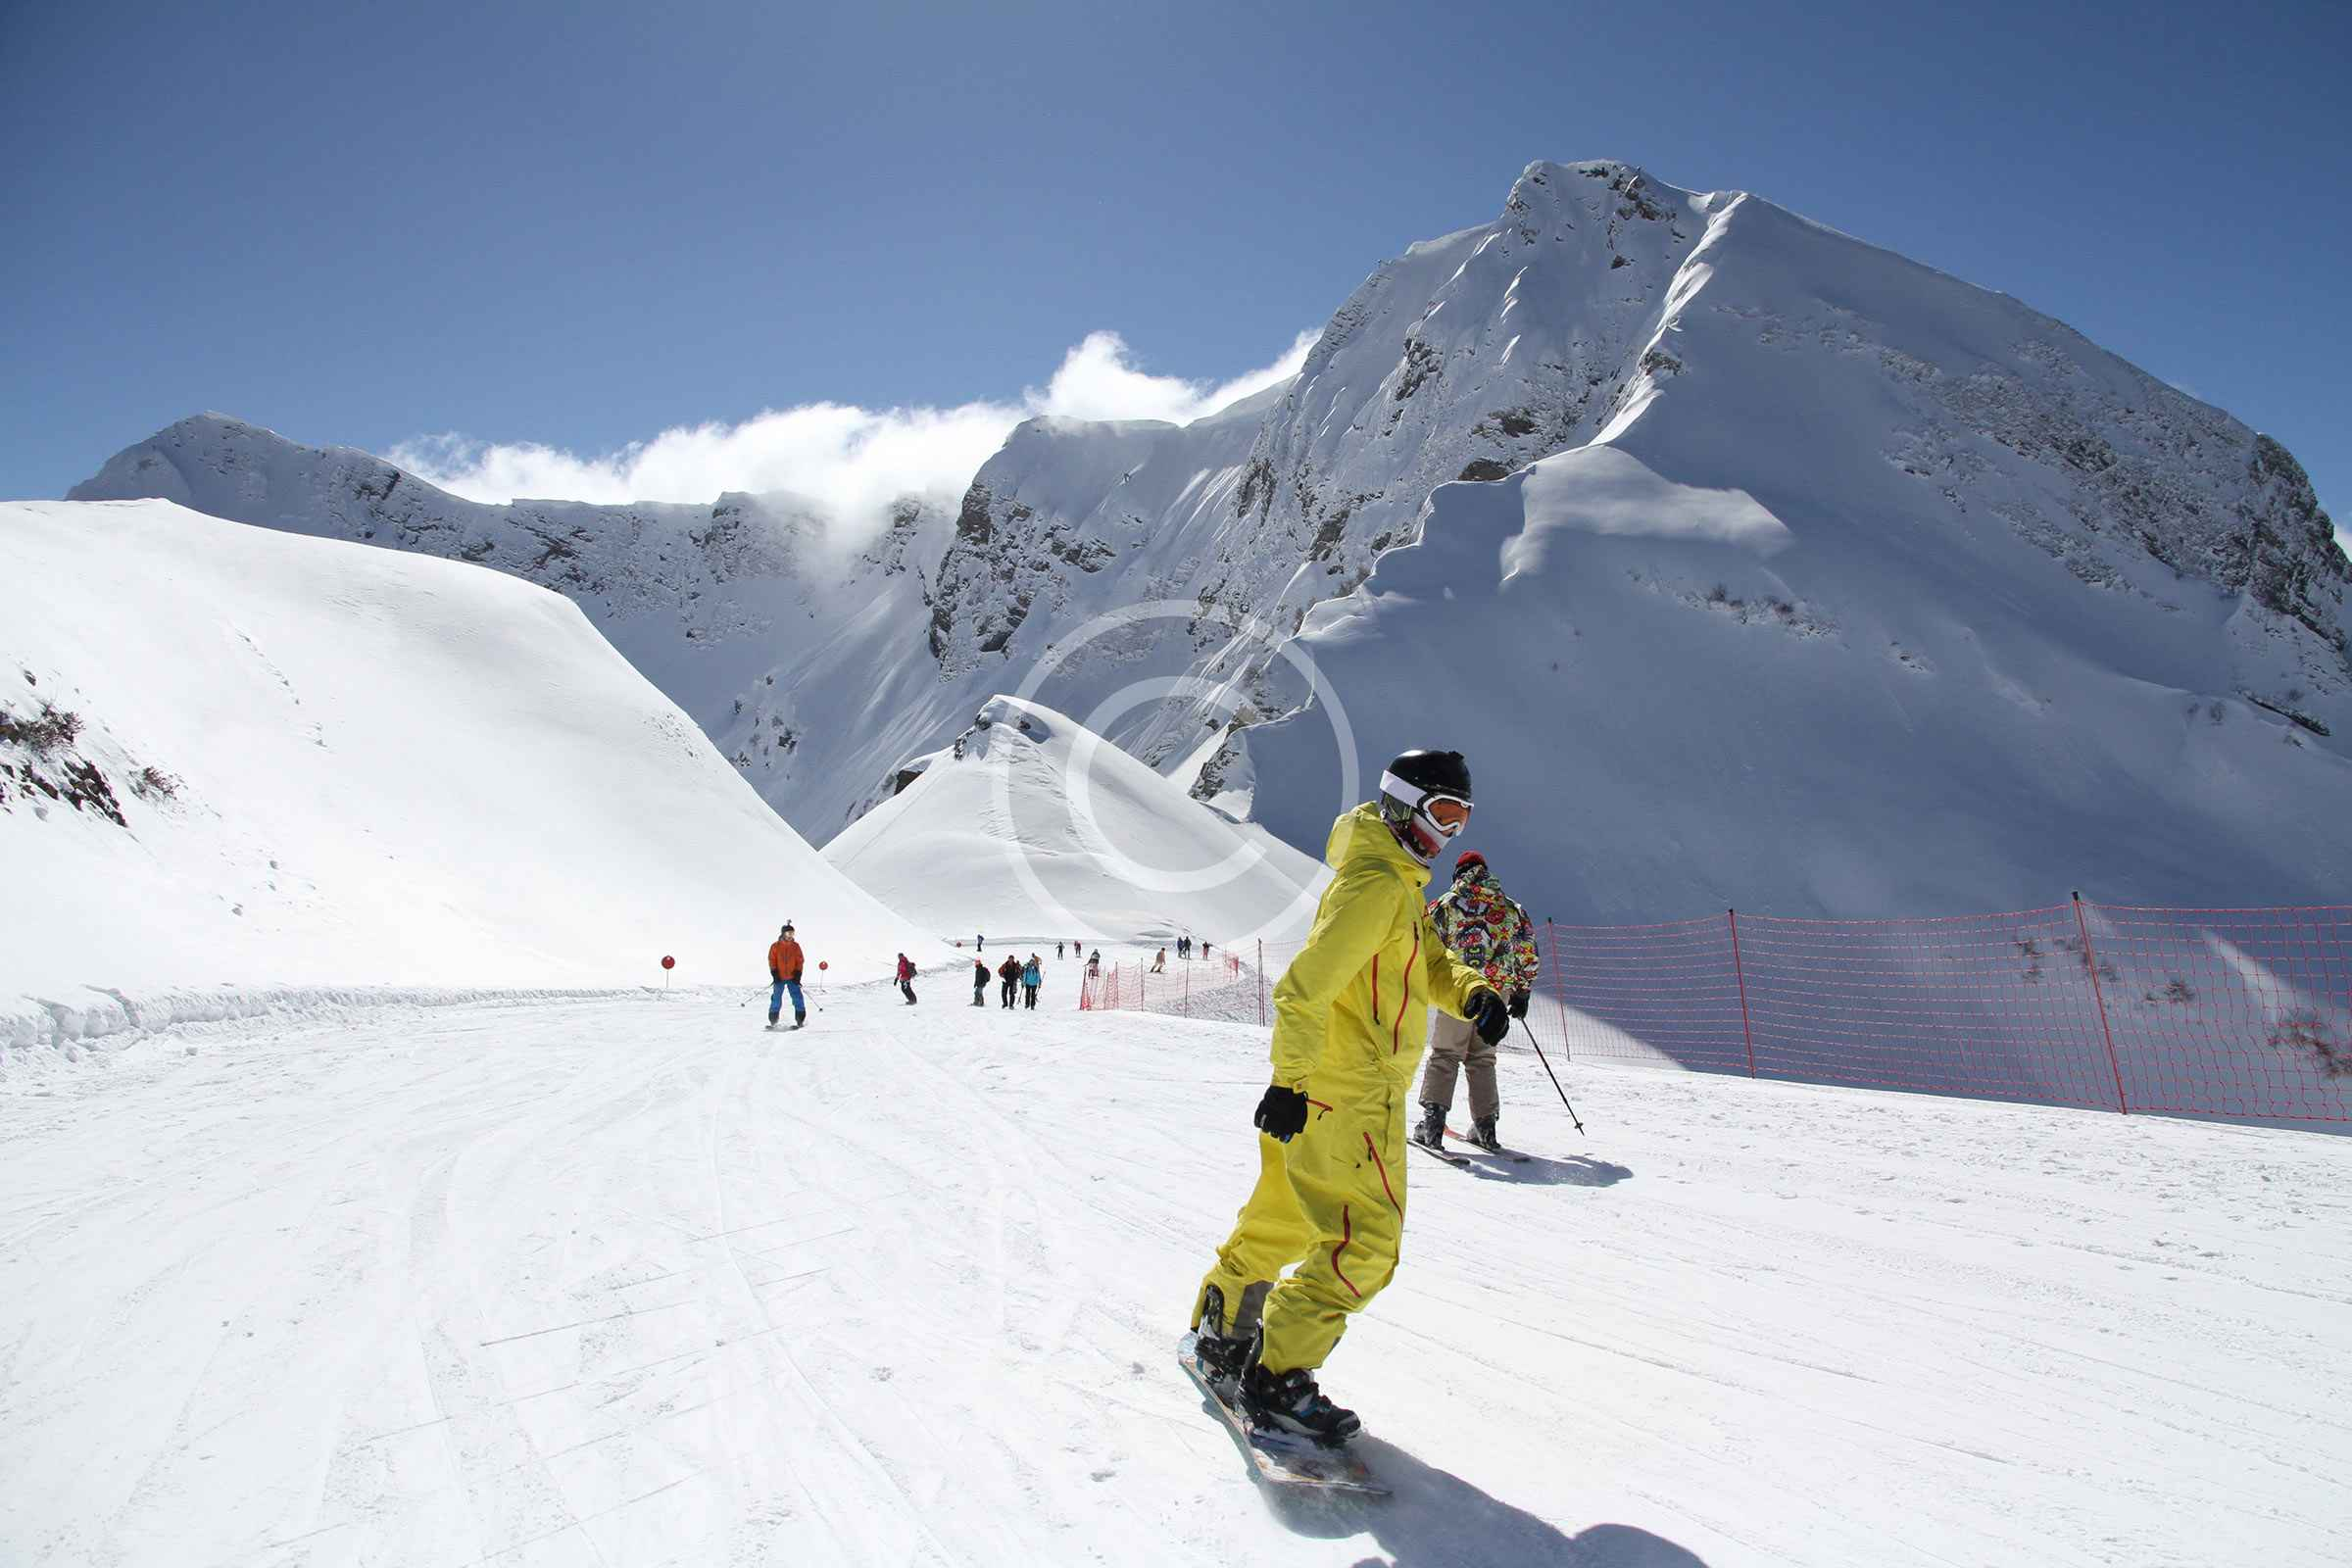 Skiing and Snowboarding: Safety Tips for Families